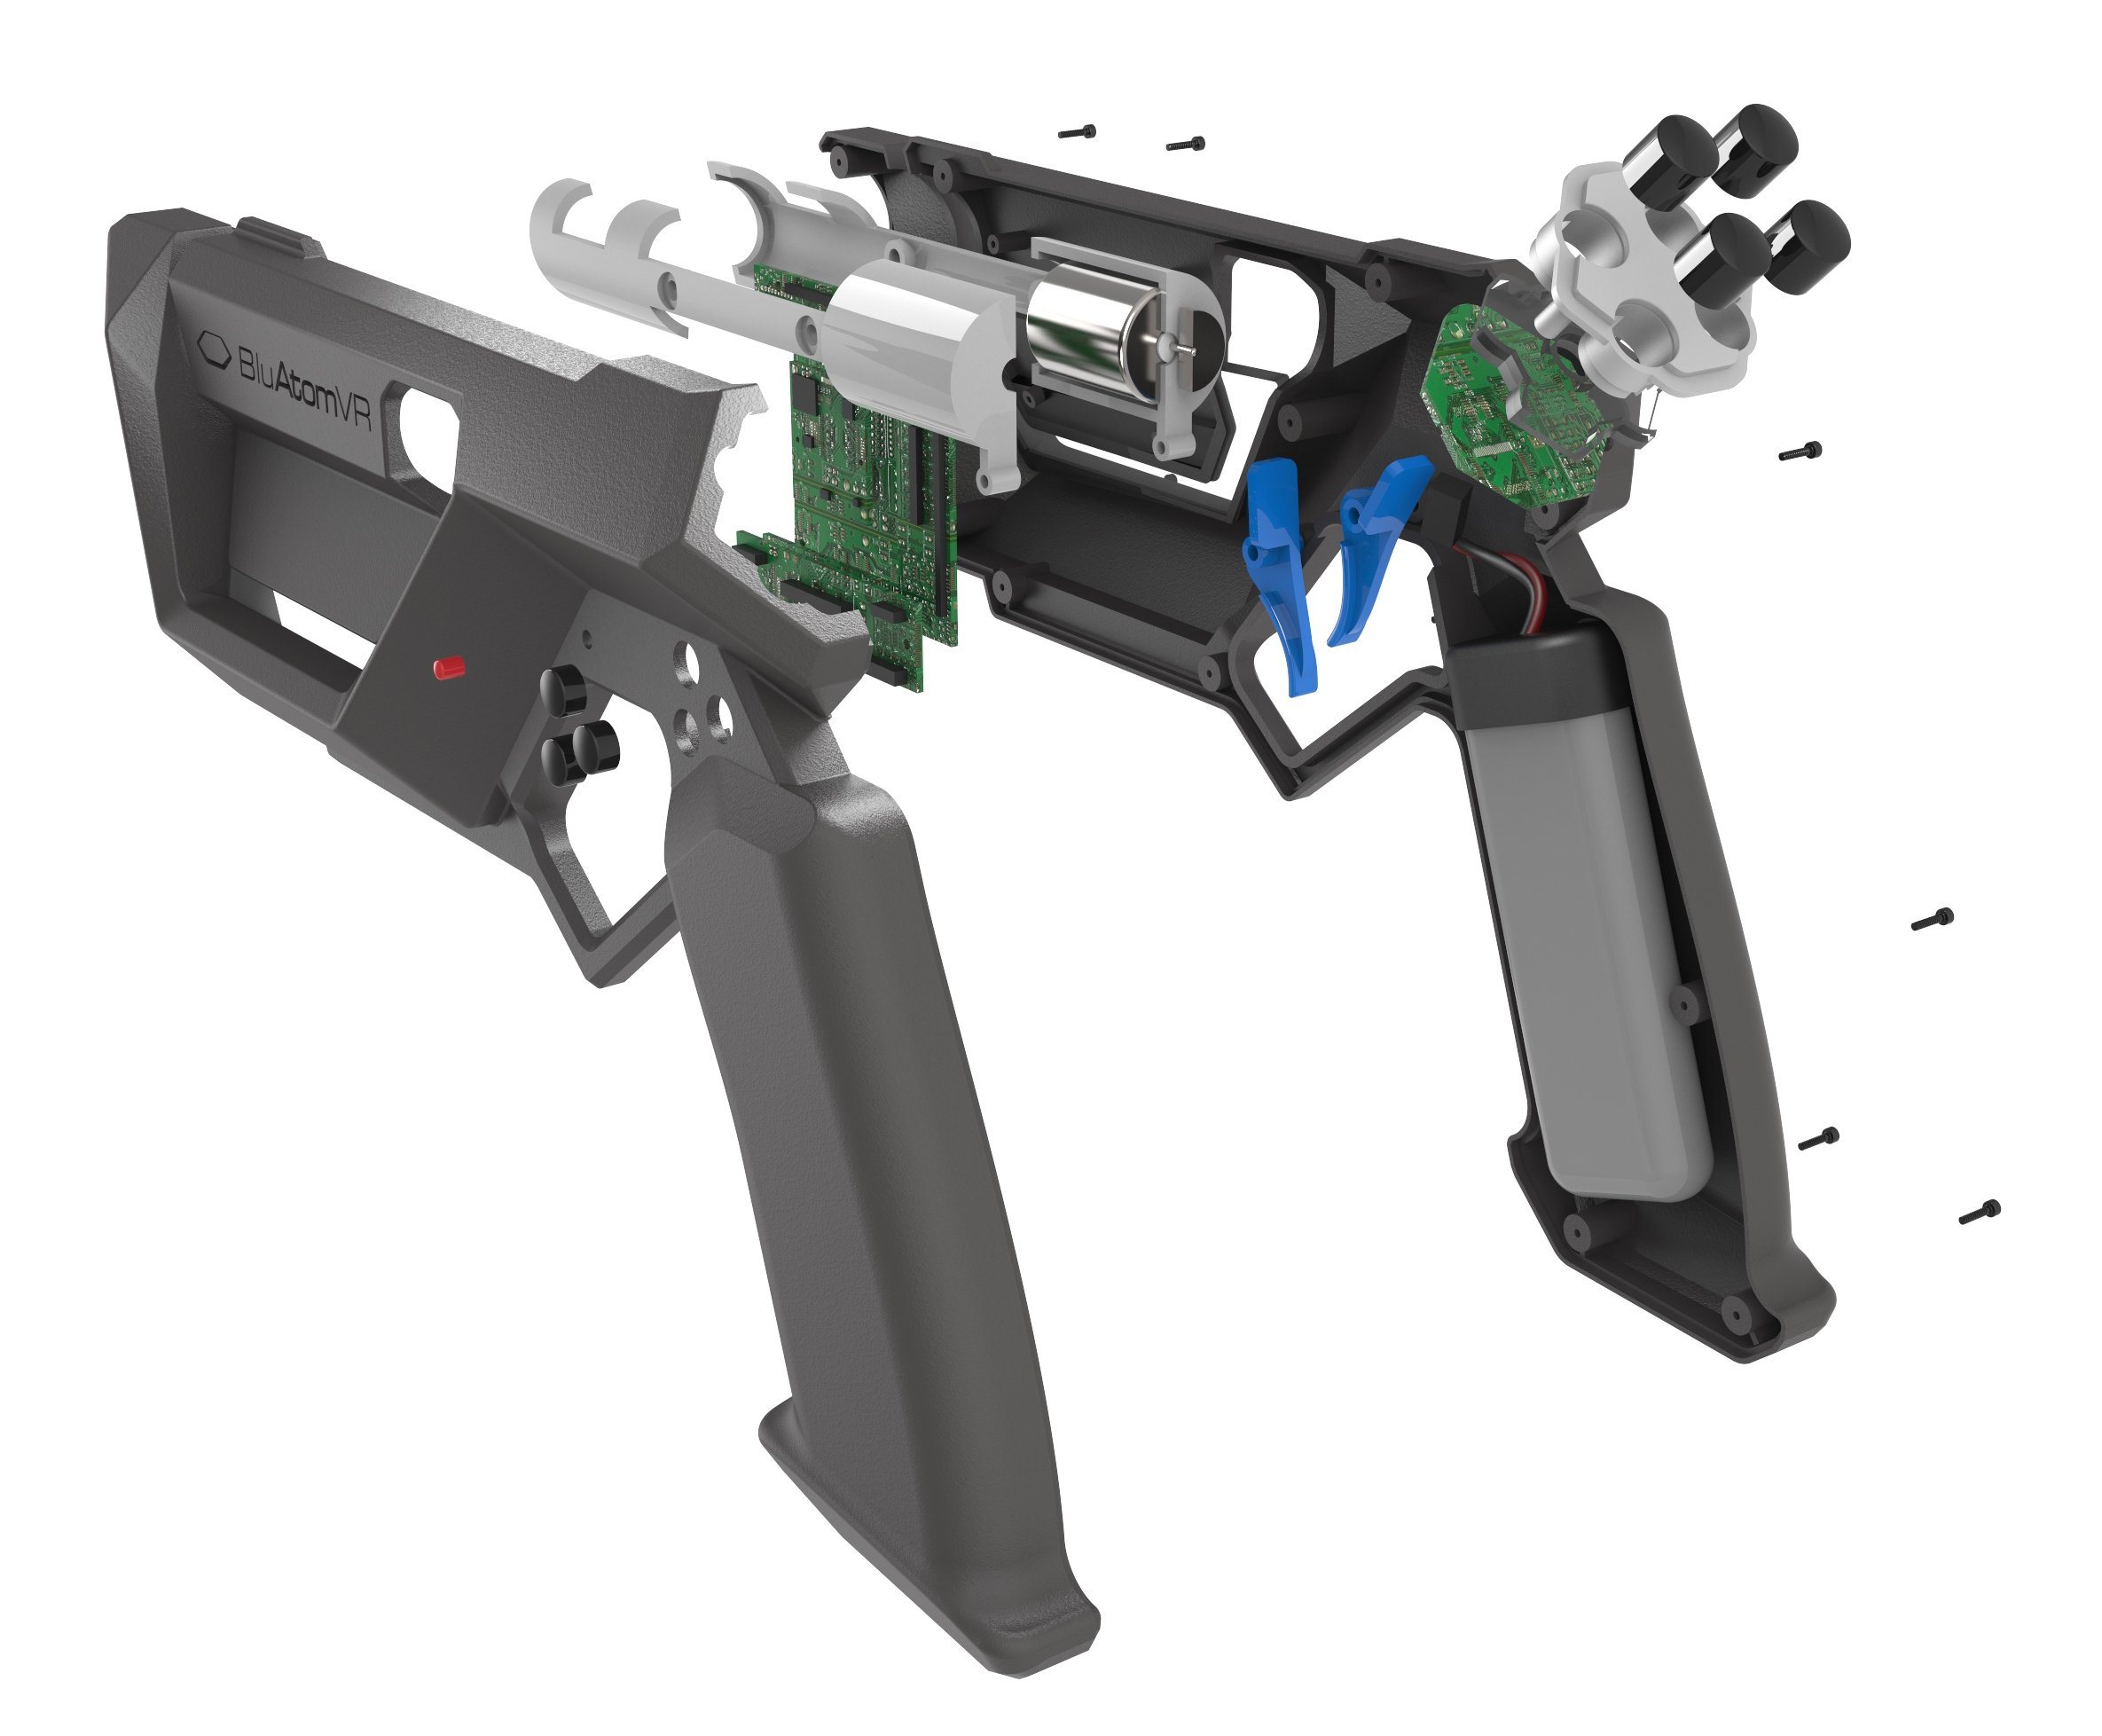 VR gun 3D CAD exploded view